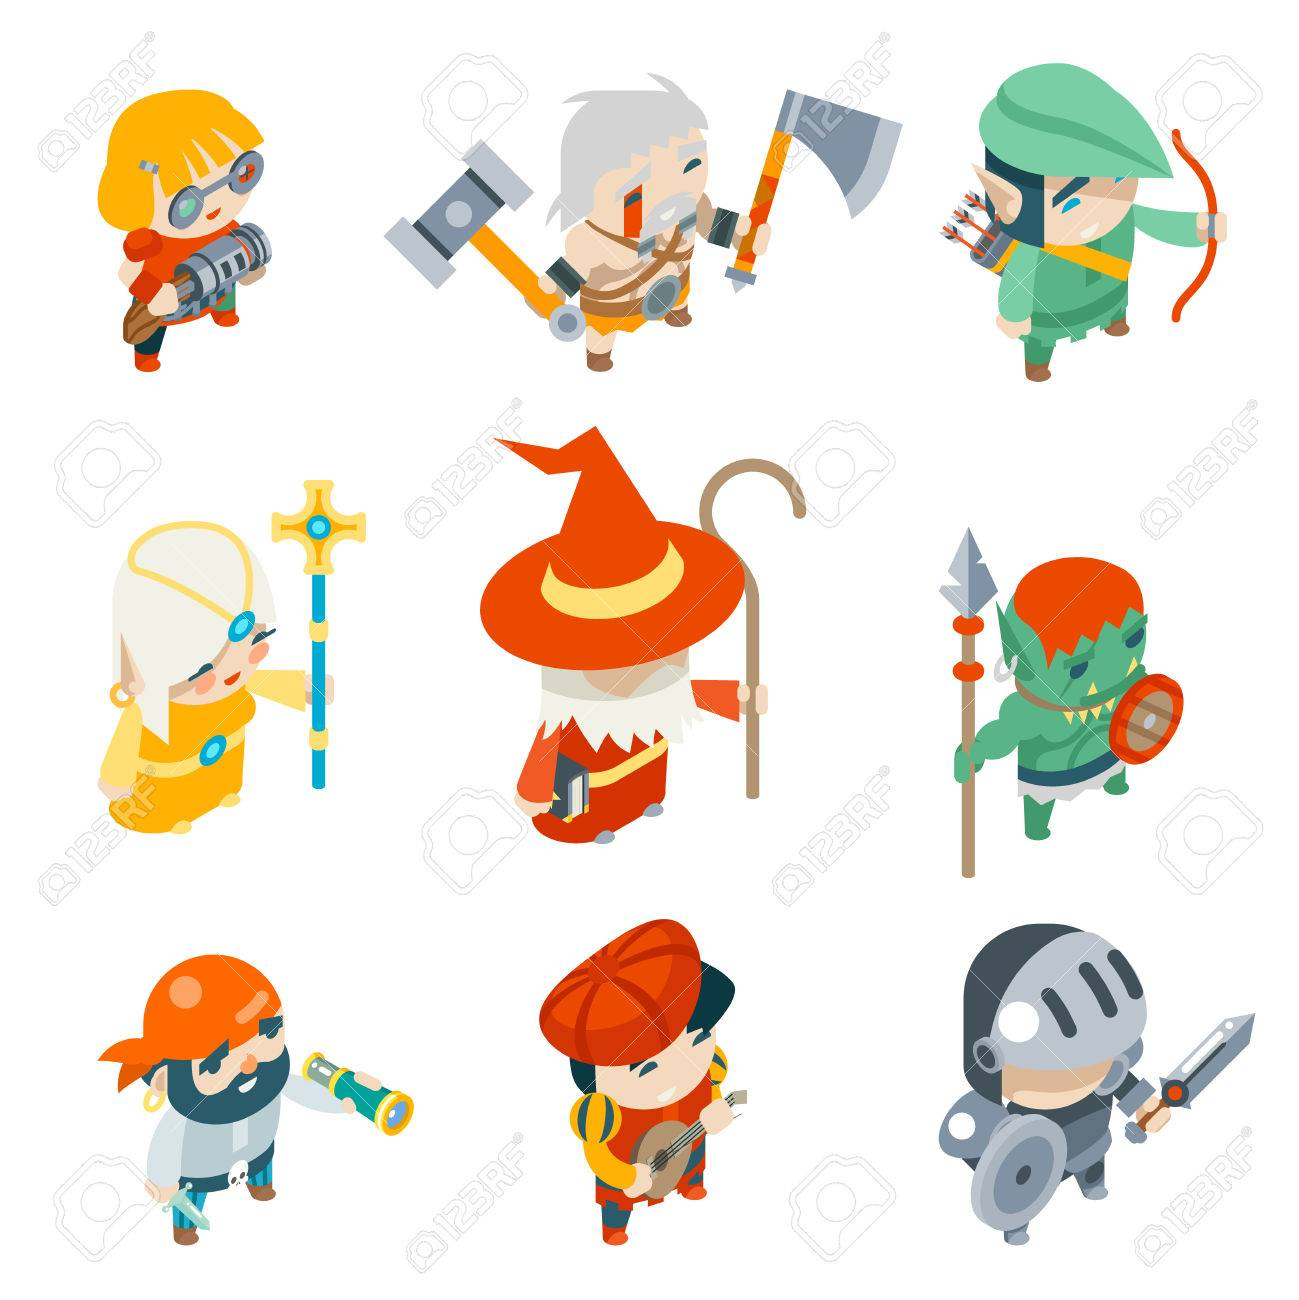 Fantasy RPG Game Characters Isometric Vector Icons Set Vector